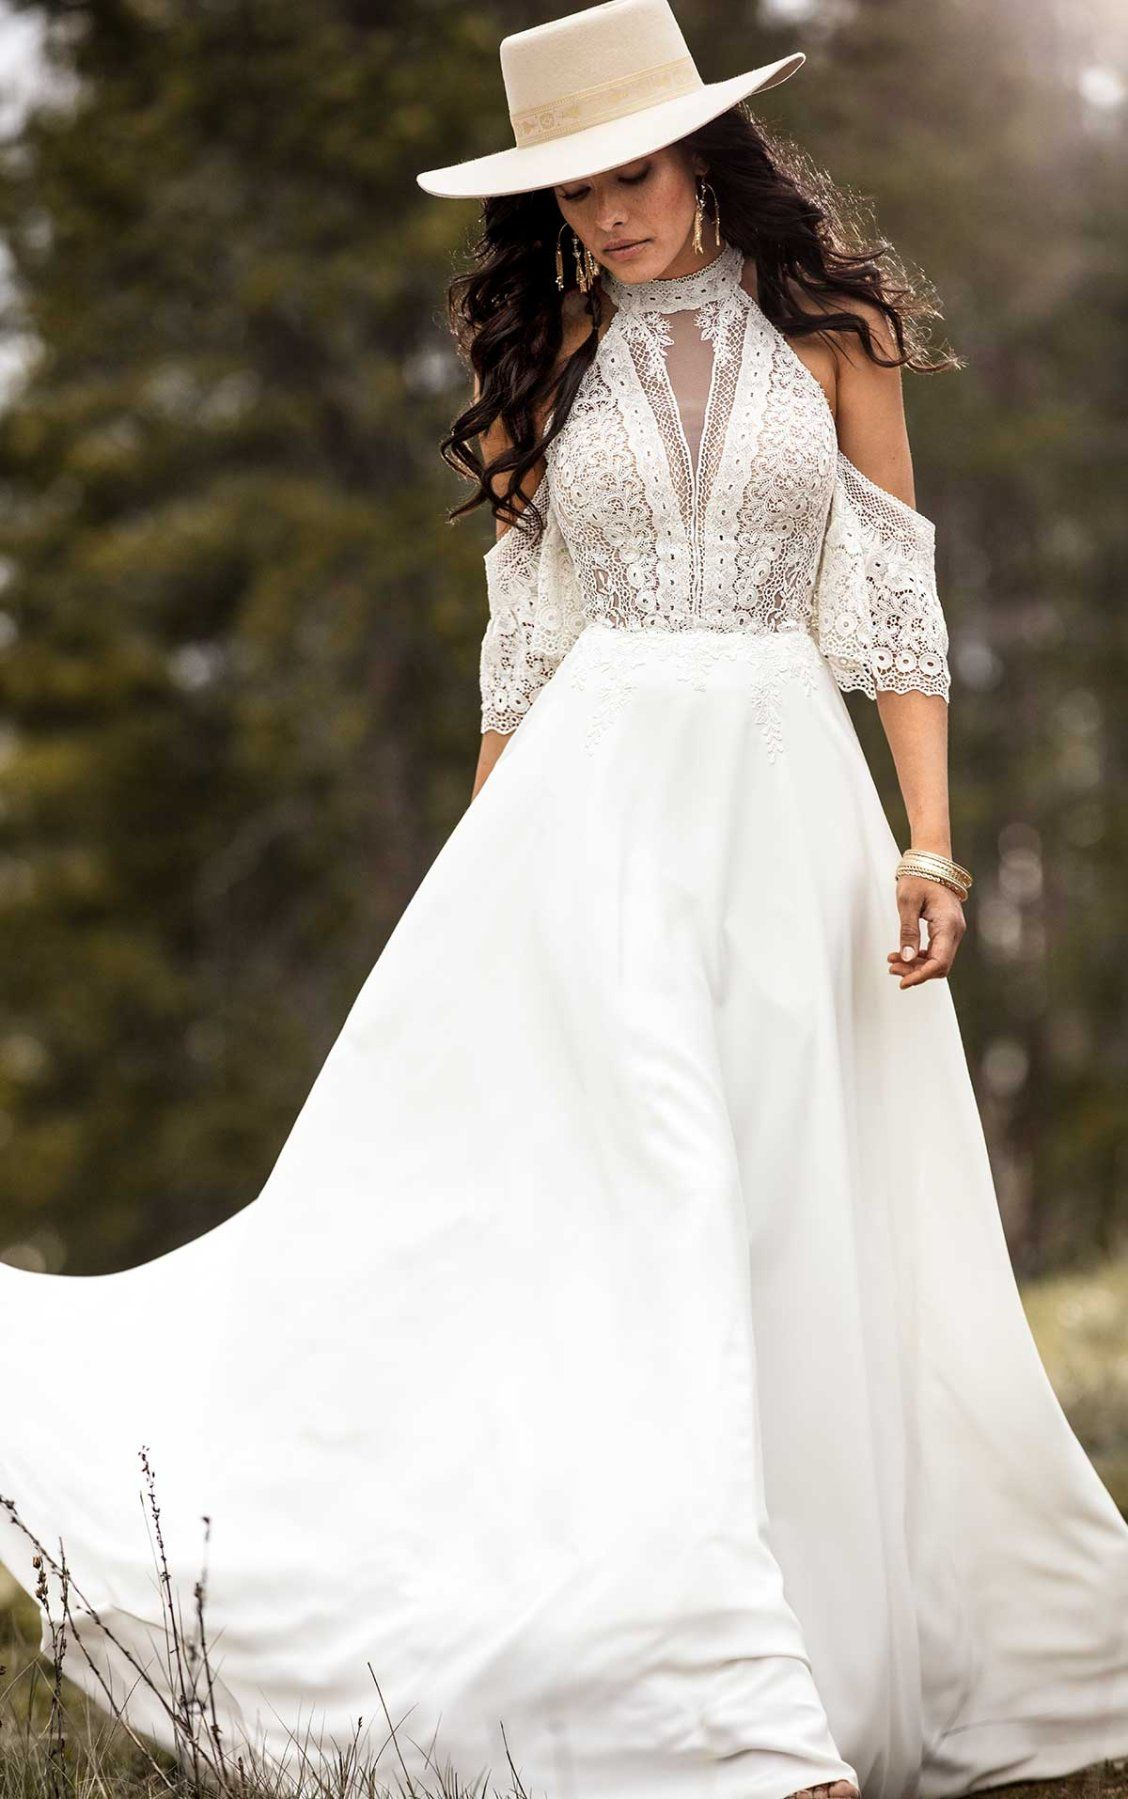 Simple Bohemian Wedding Dress With Removable Arm Cuffs All Who Wander Bohemian Wedding Dress Wedding Dresses Boho Bridal Gowns [ 1799 x 1128 Pixel ]